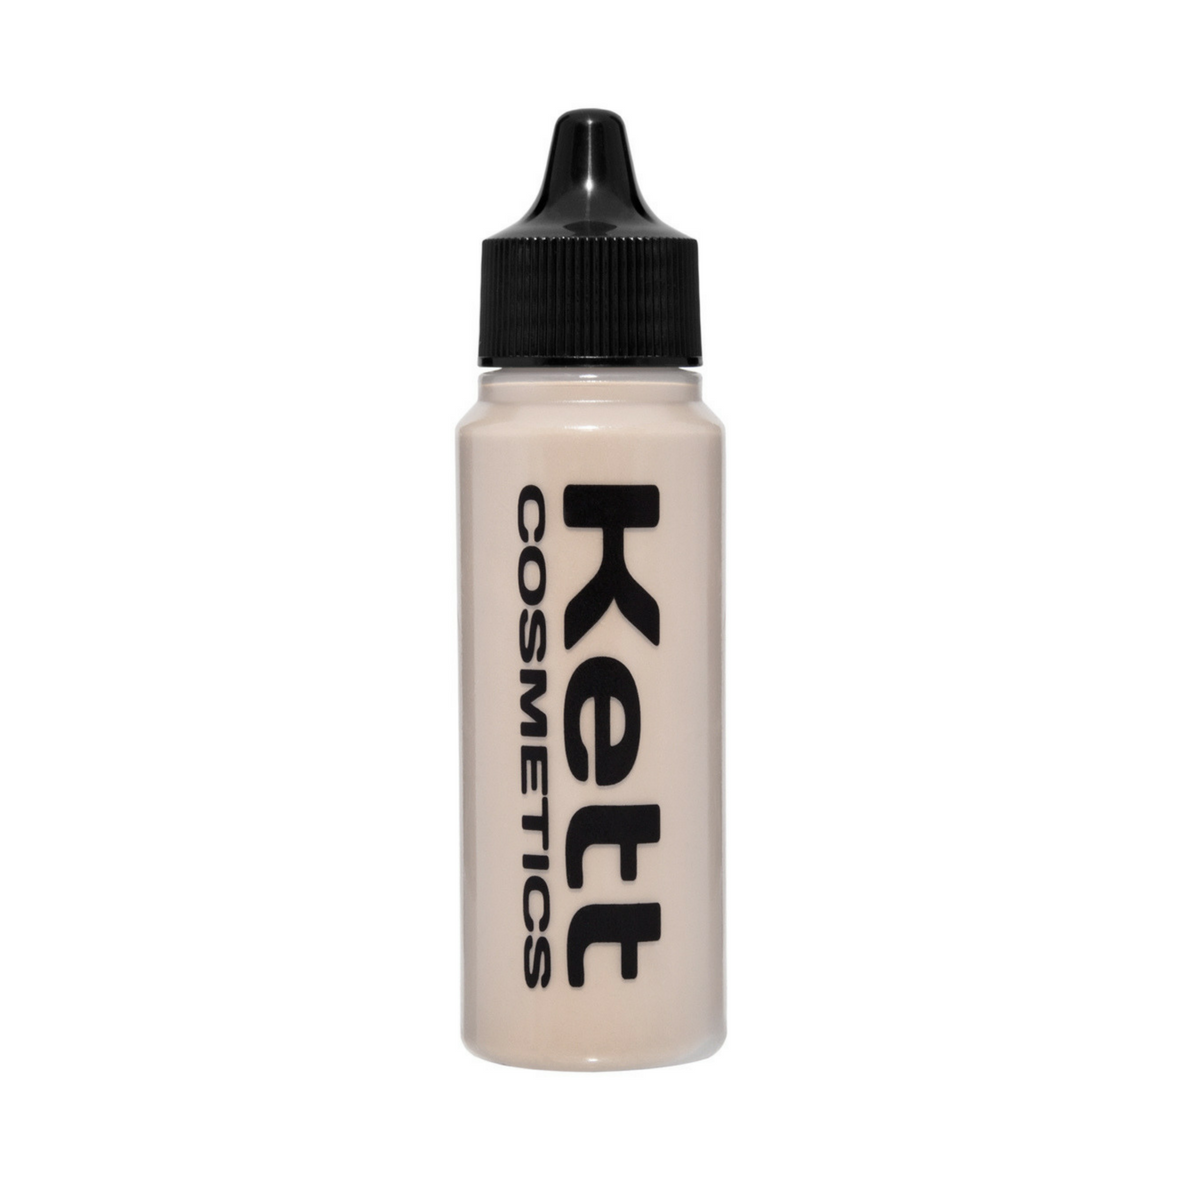 Kett Airbrush Makeup Hydro Foundation